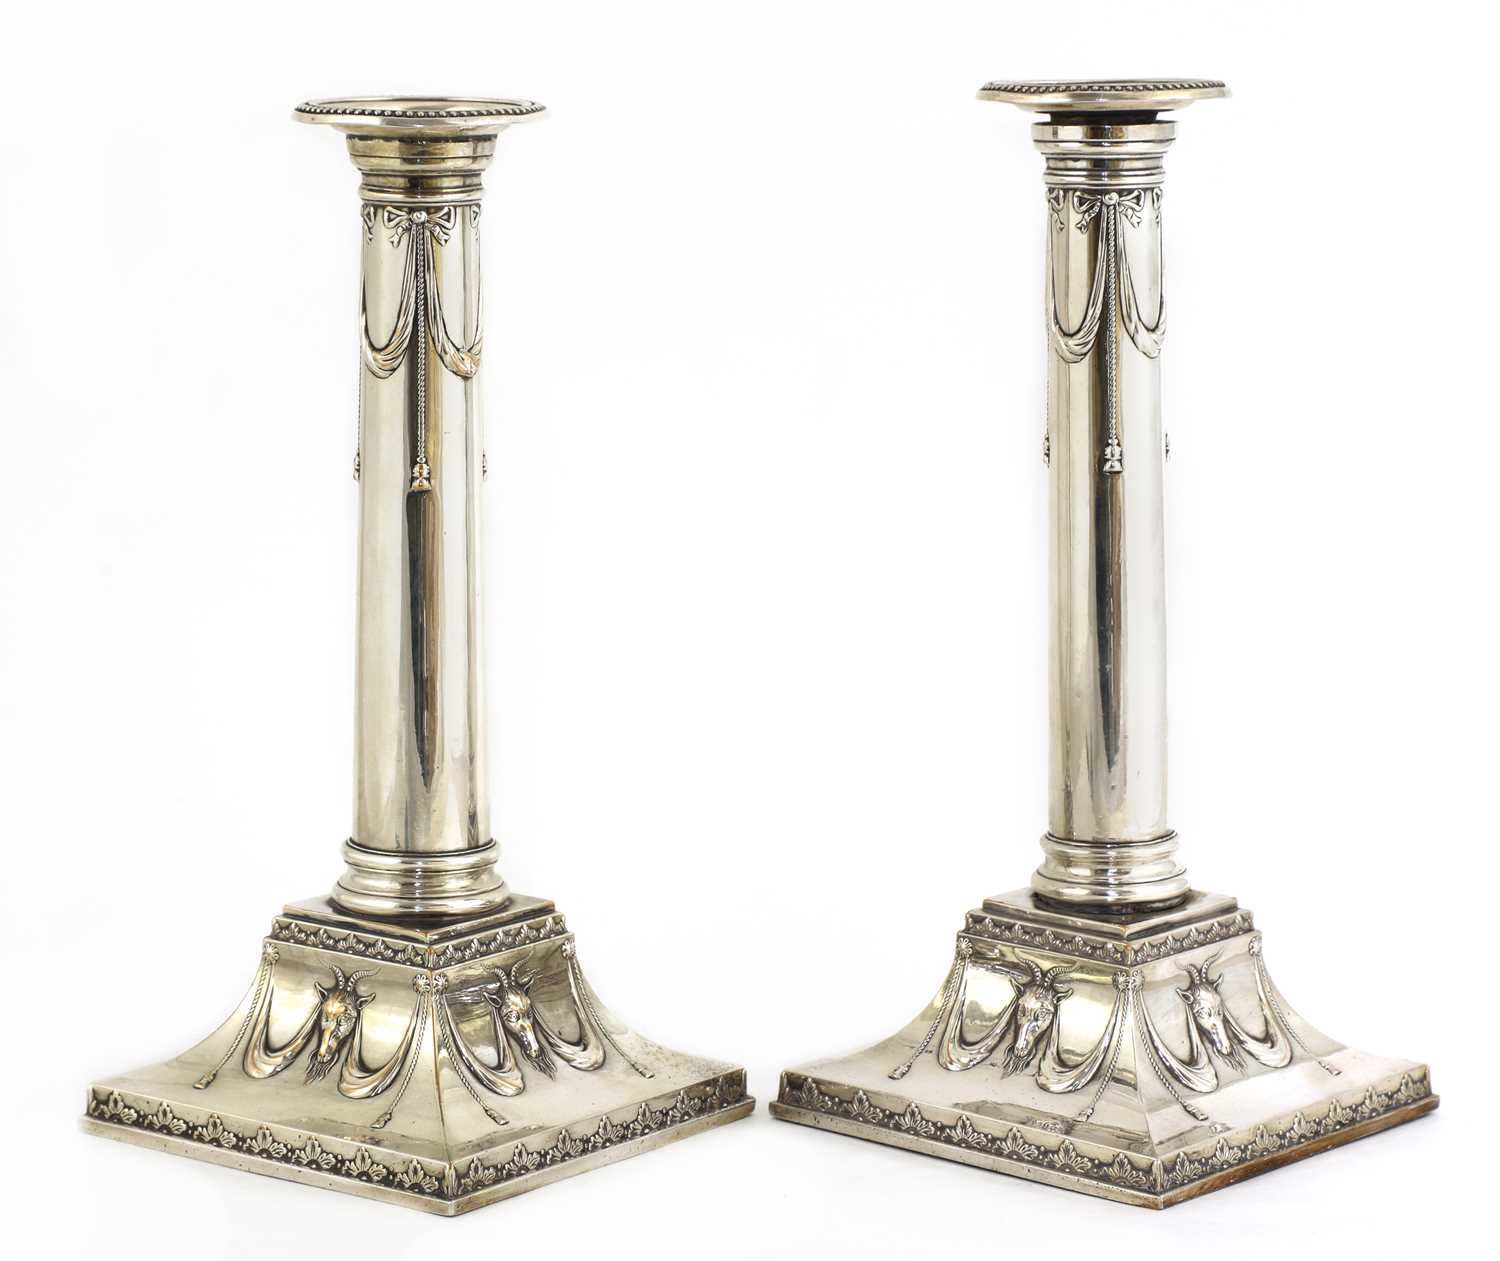 A pair of Edwardian silver-plated neoclassical candlesticks, - Image 2 of 5